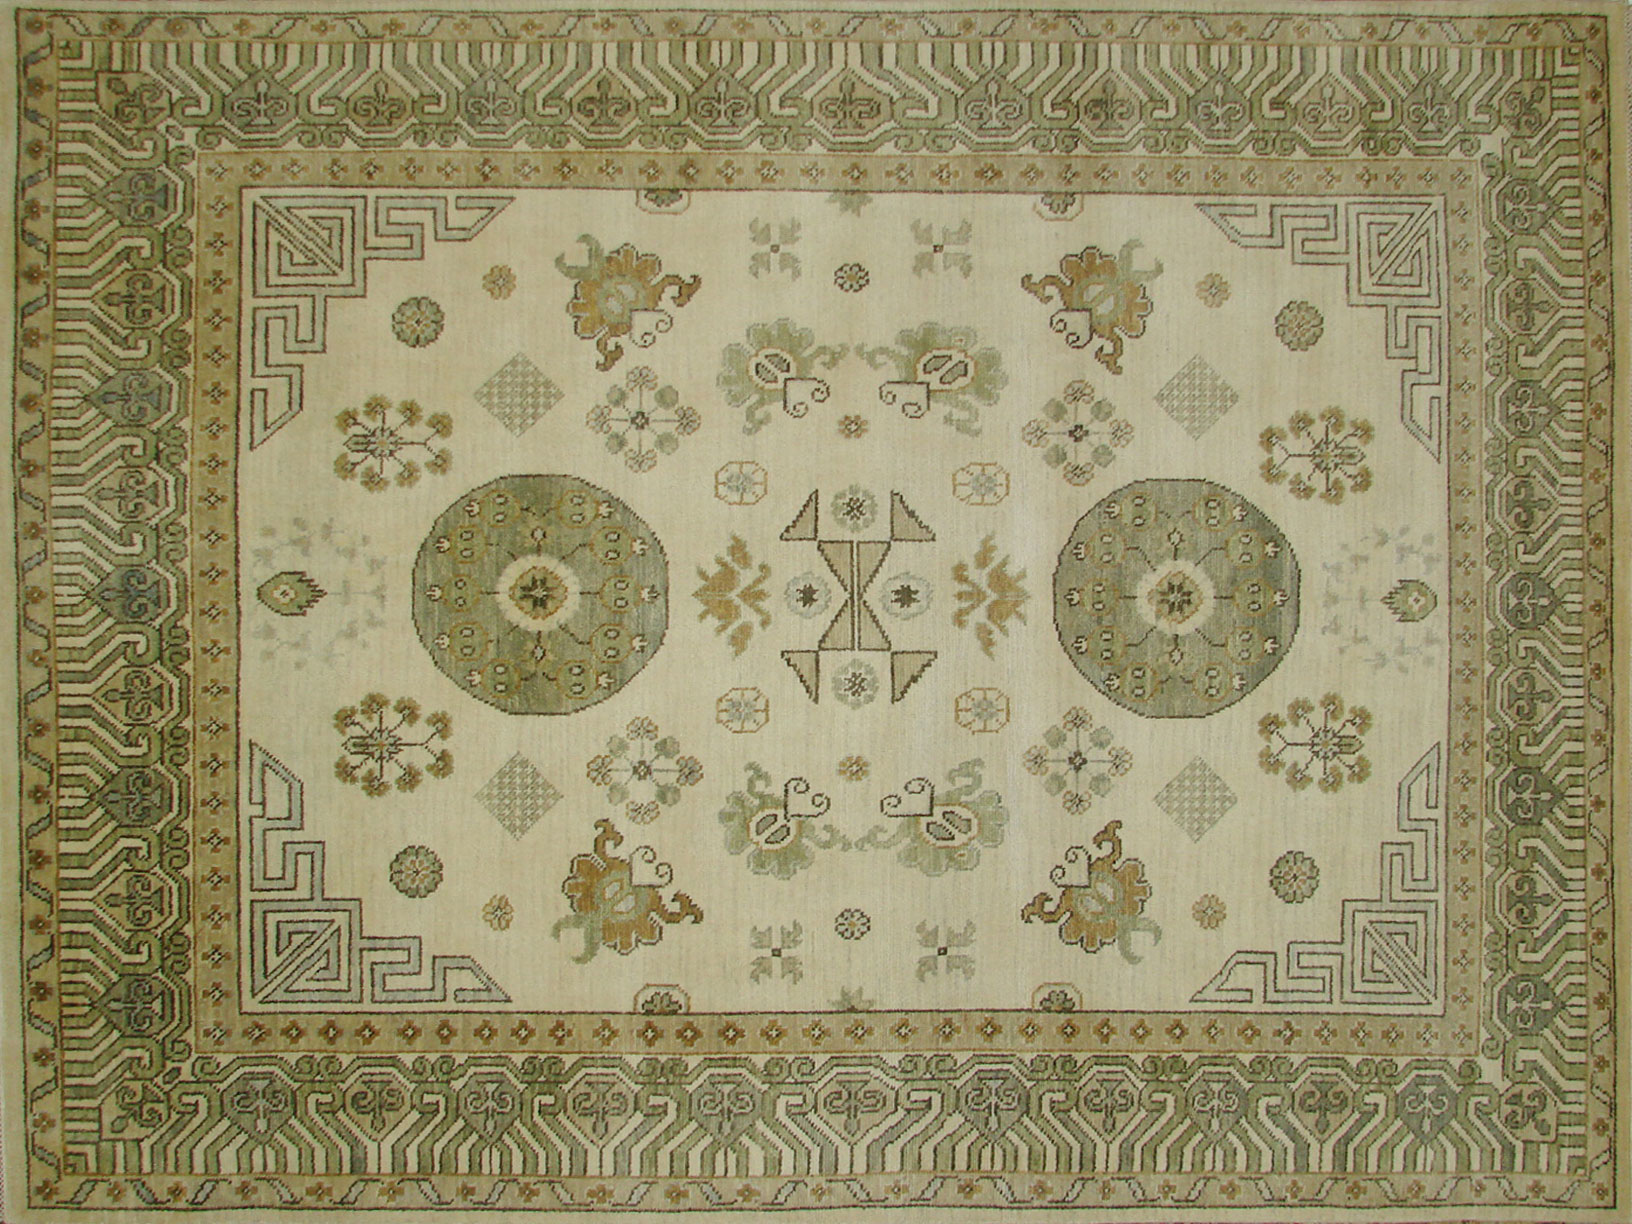 8x10 Oushak Hand Knotted Wool Area Rug - MR18595